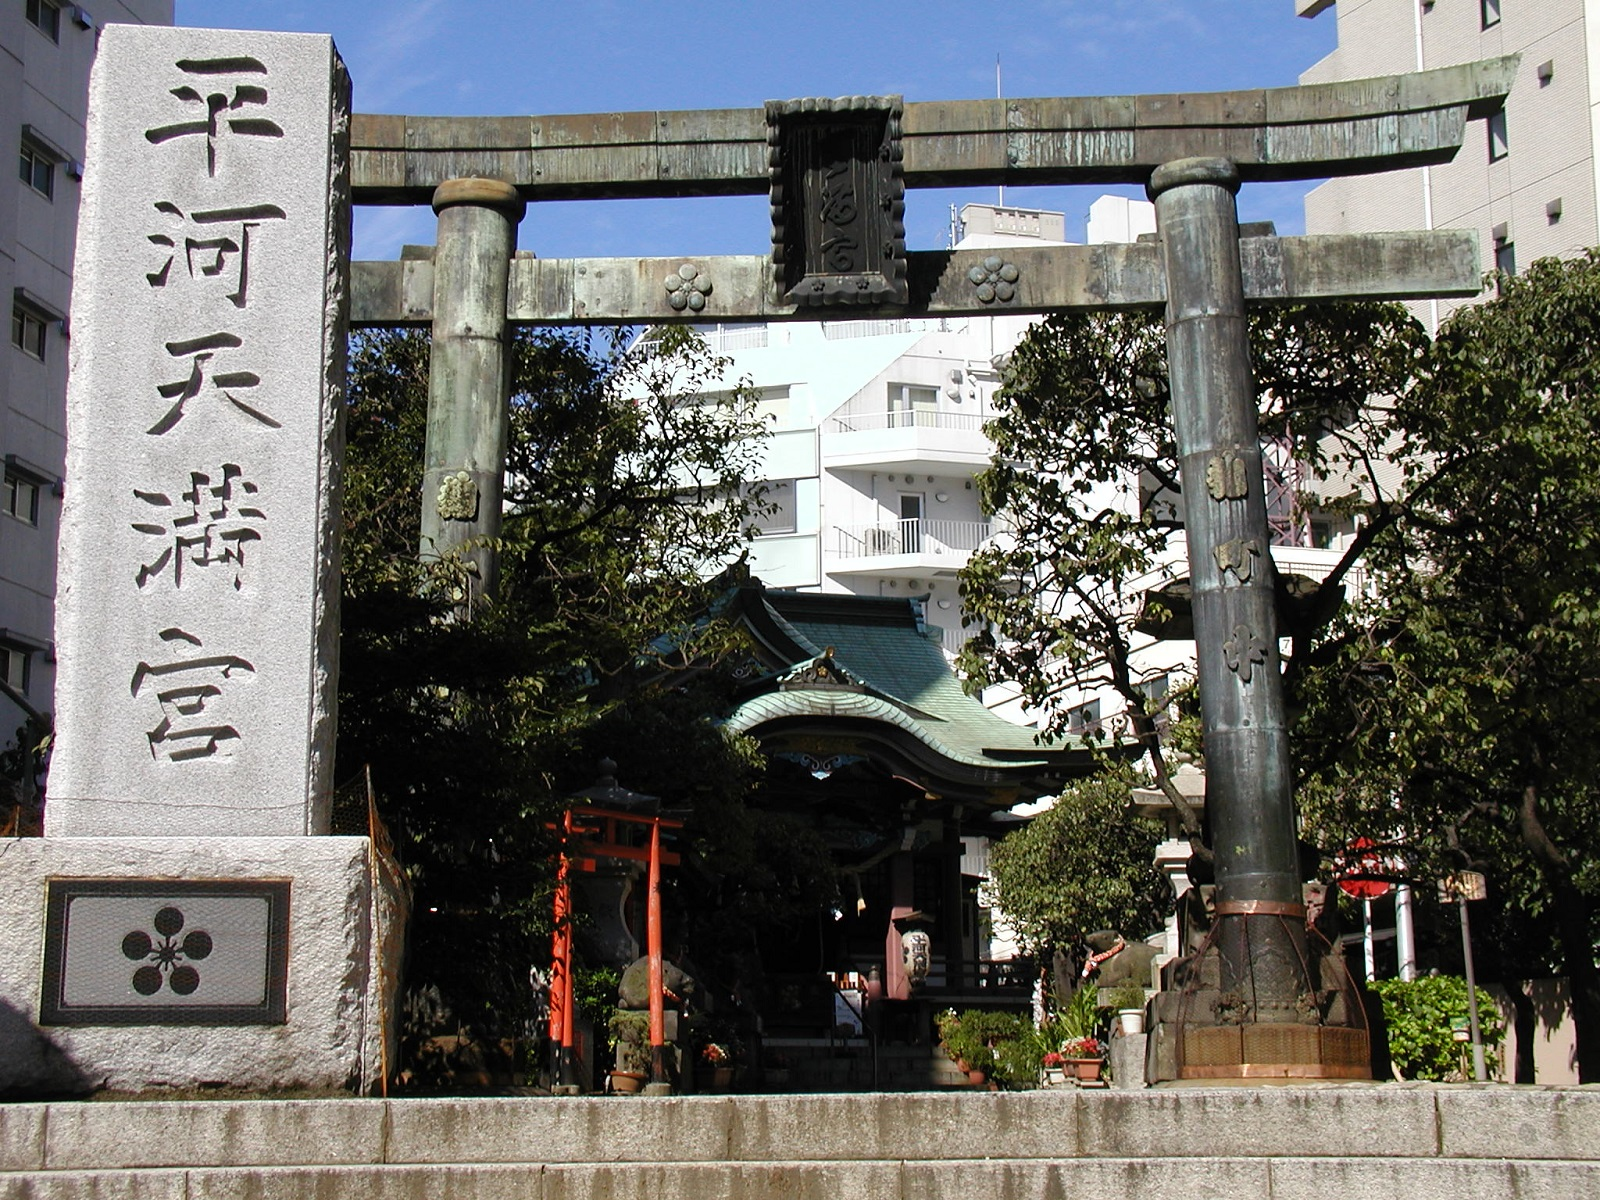 Flat river Tenman-gu Shrine